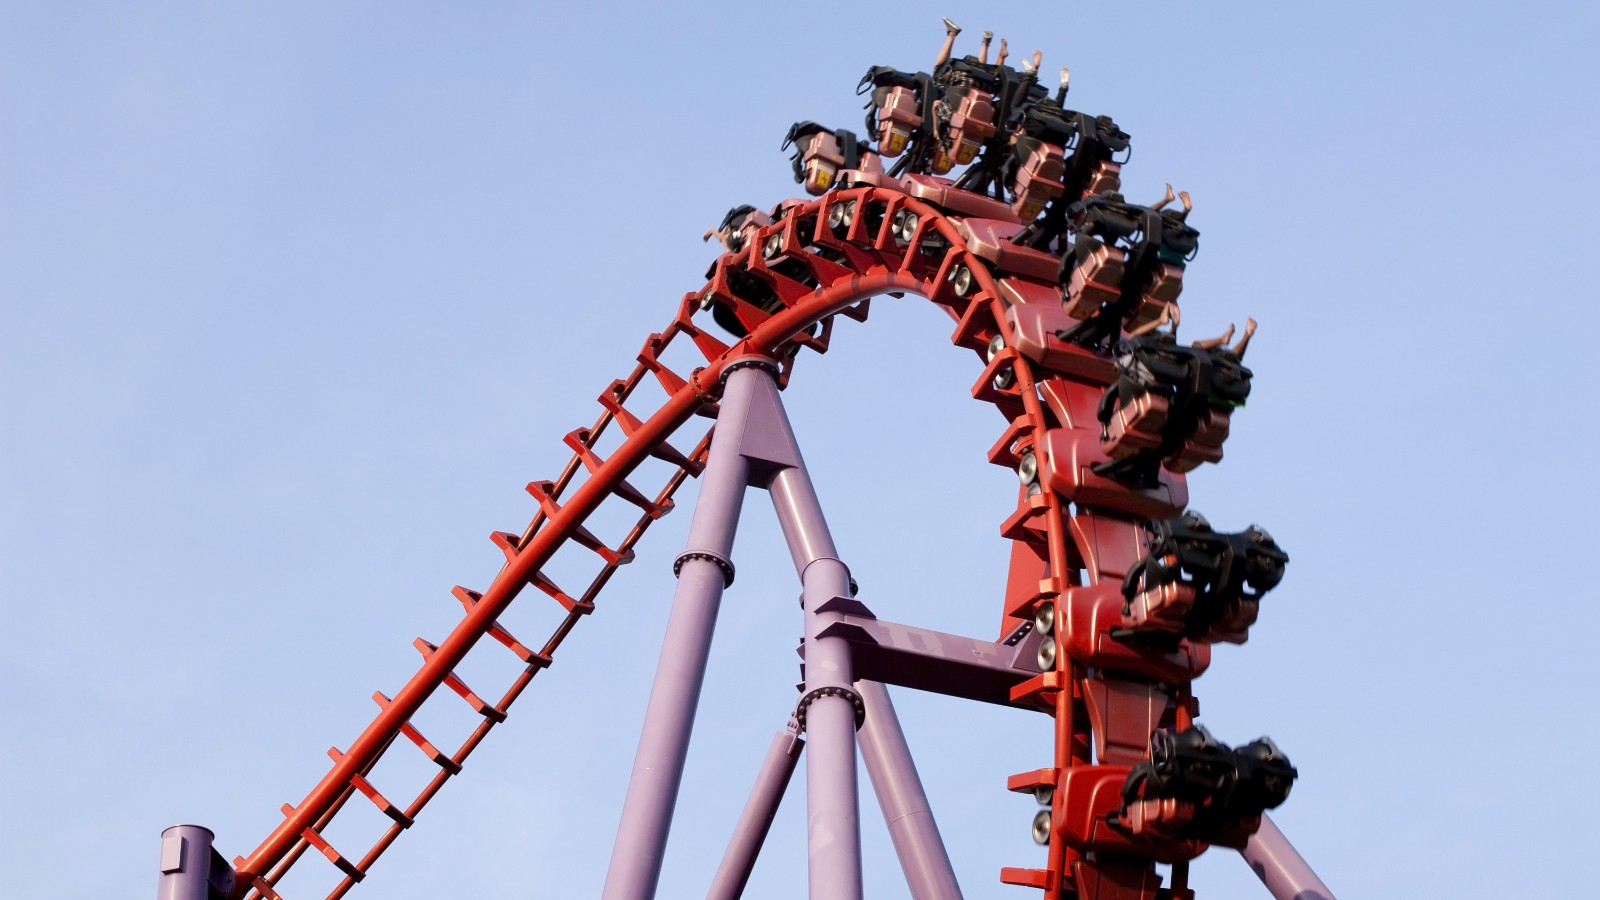 Are You Too Old For Roller Coasters